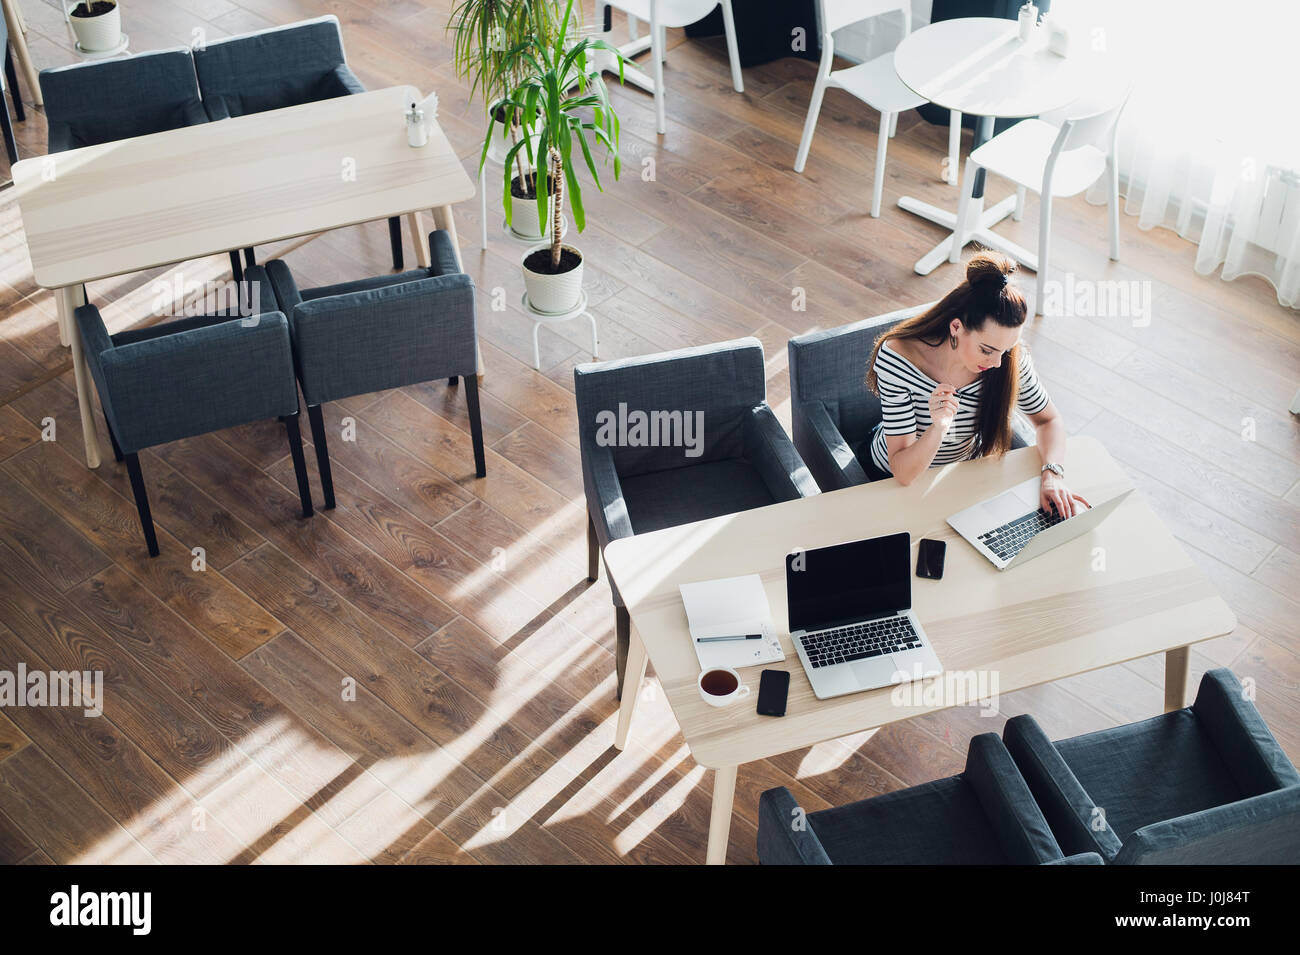 Top view of an adult woman sitting at desk and working on her laptop, her table is perfectly tidy, the sun casts - Stock Image